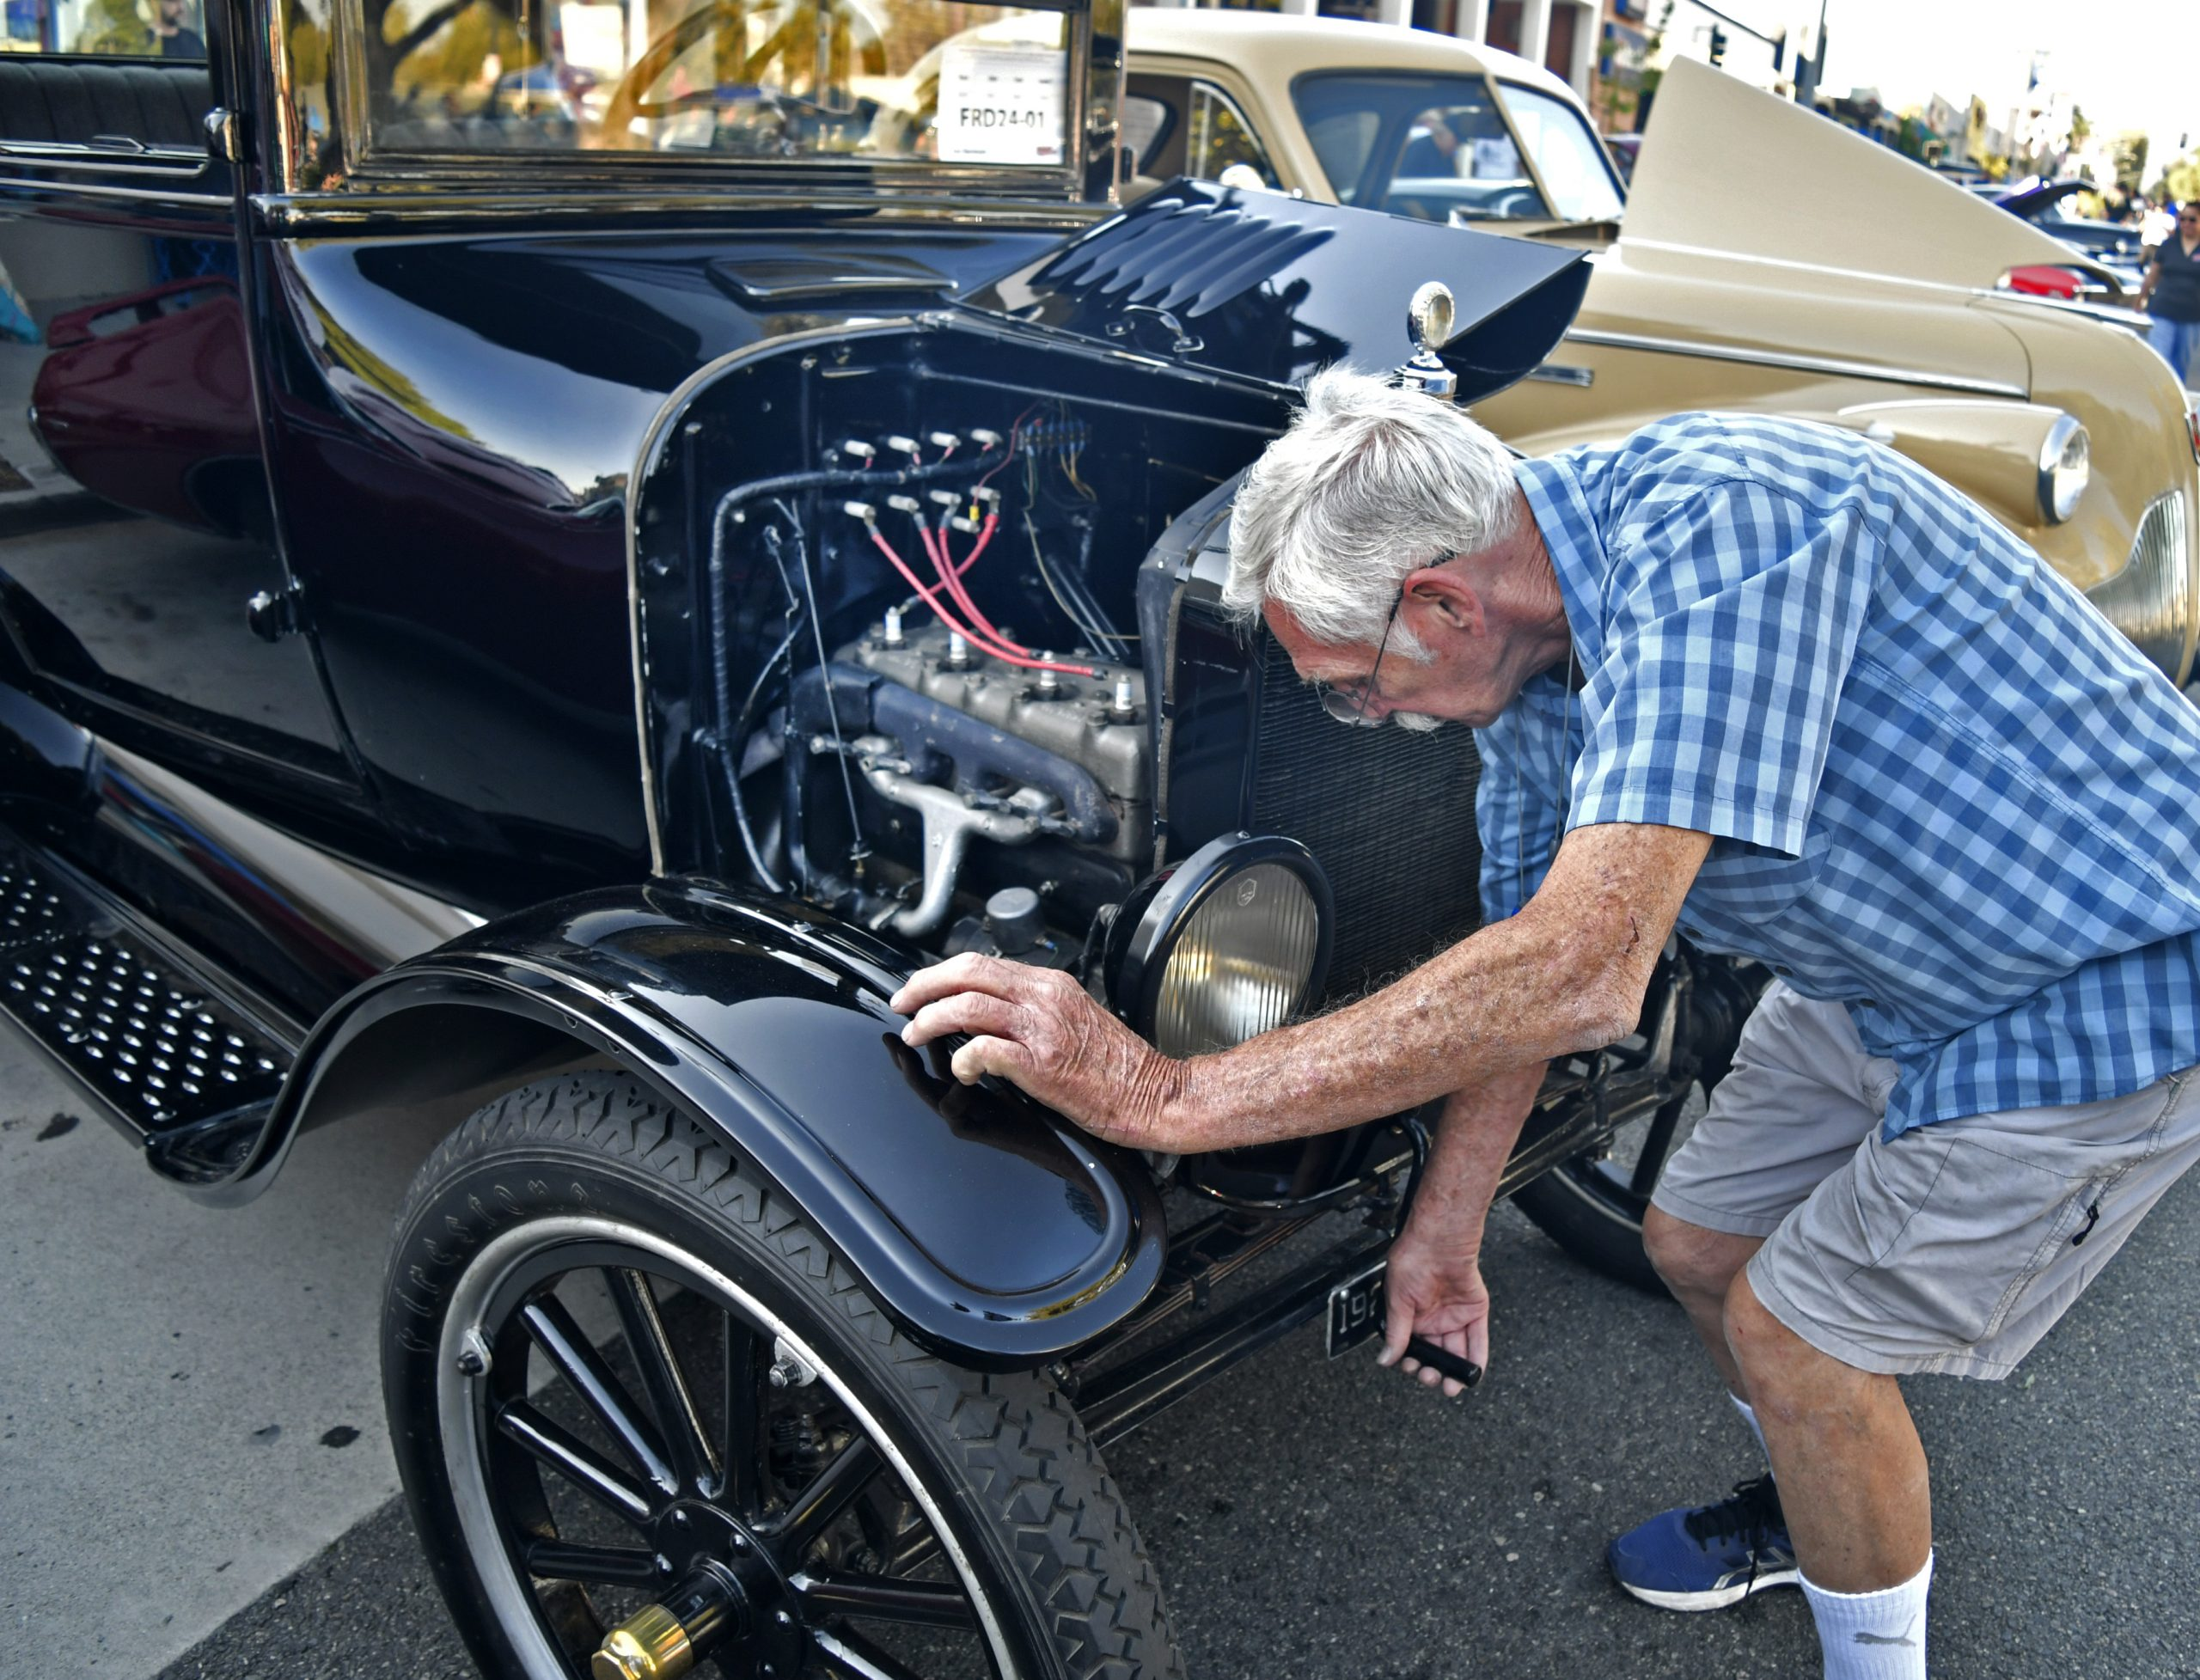 Route 66 Reunion model t ford engine cranking